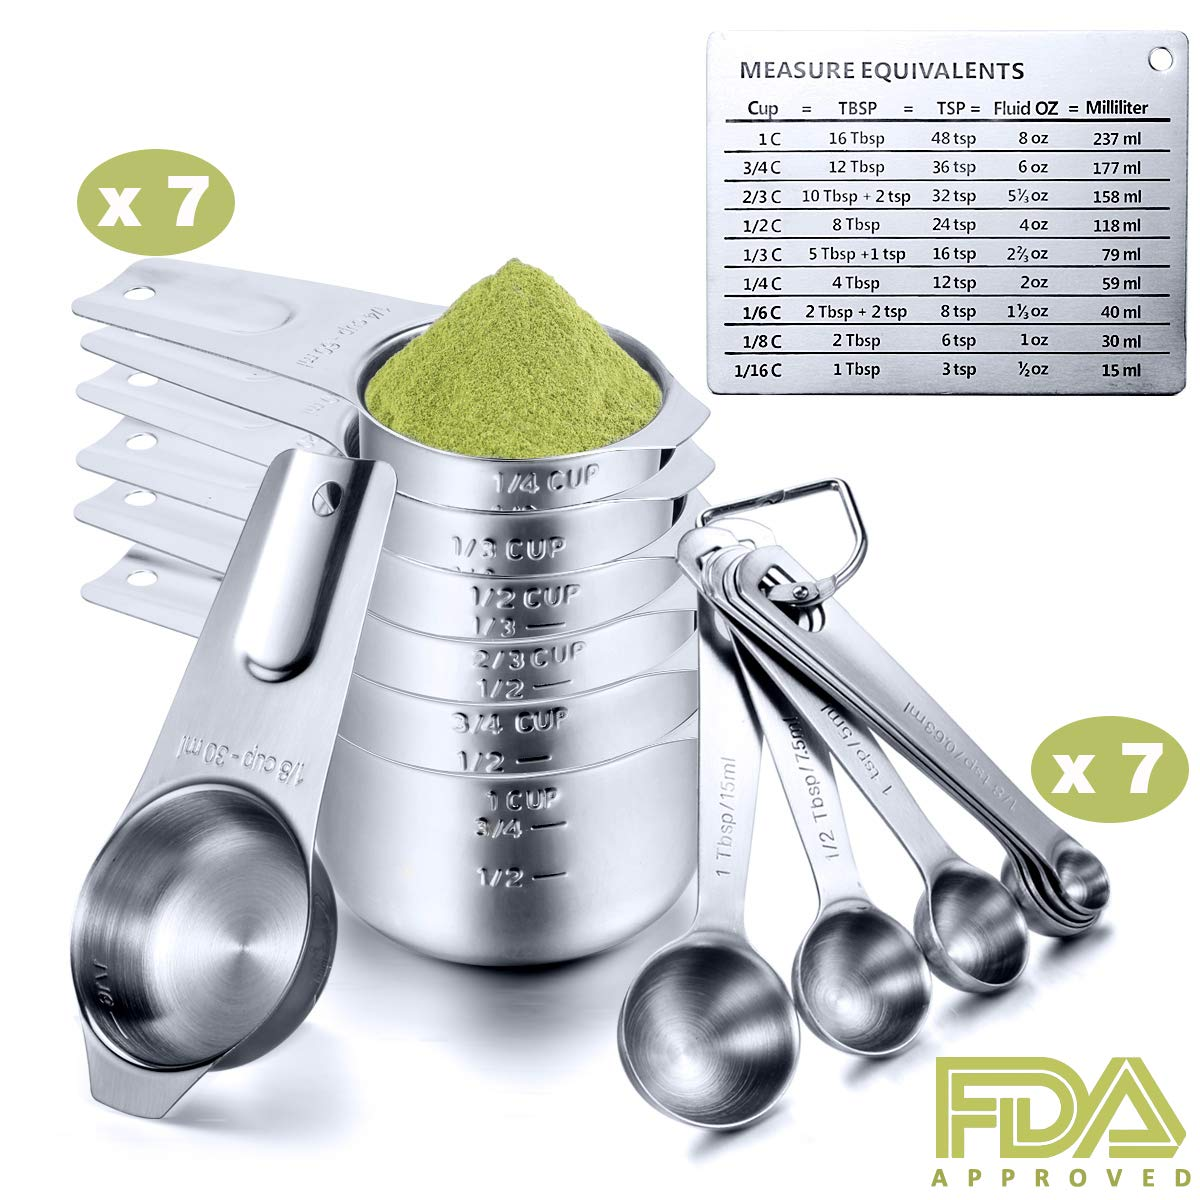 Engraved Measuring Cups Spoons Set, Umite Chef Round Teaspoons Made of 304 Stainless Steel, 7 Cups,7 Spoons, 1 Magnetic Measurement Conversion Chart, Volume 1/8 Tsp/0.63 ML to 1 Tbsp/15 ML